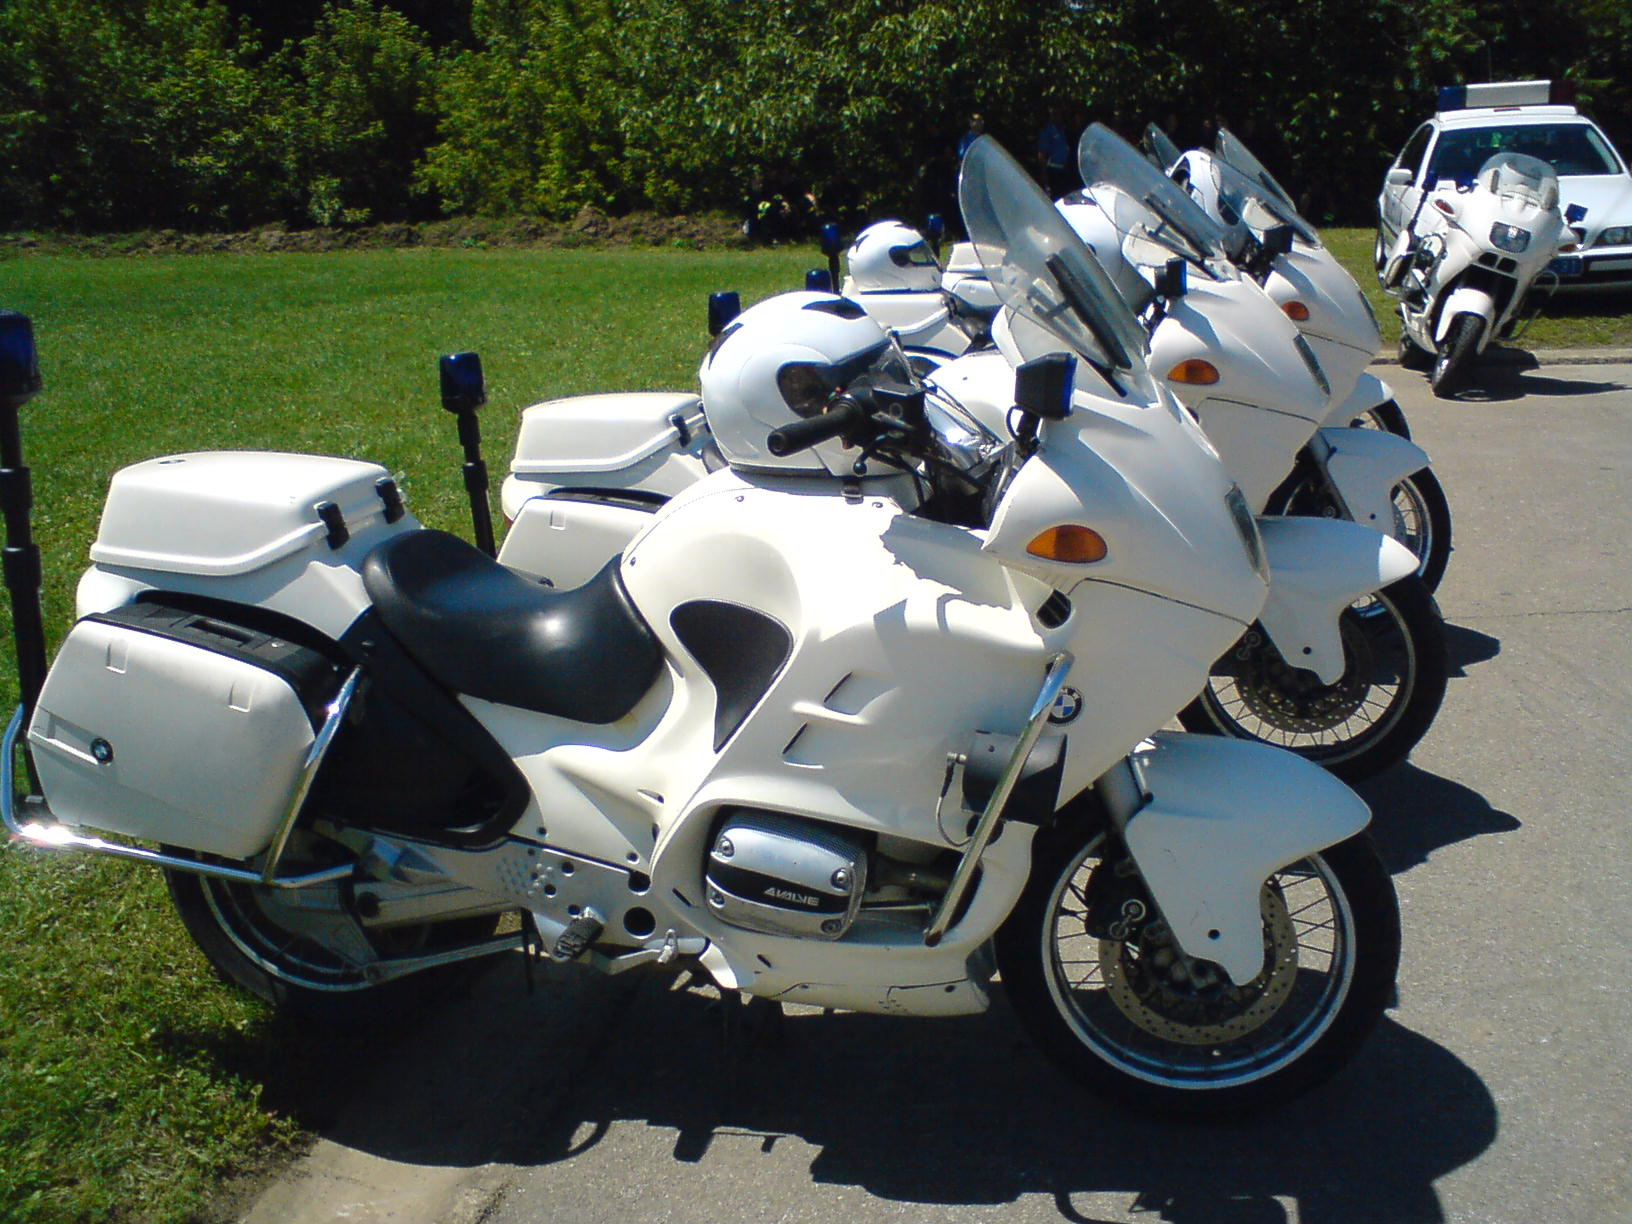 hight resolution of file bmw motorcycles of serbian police jpg